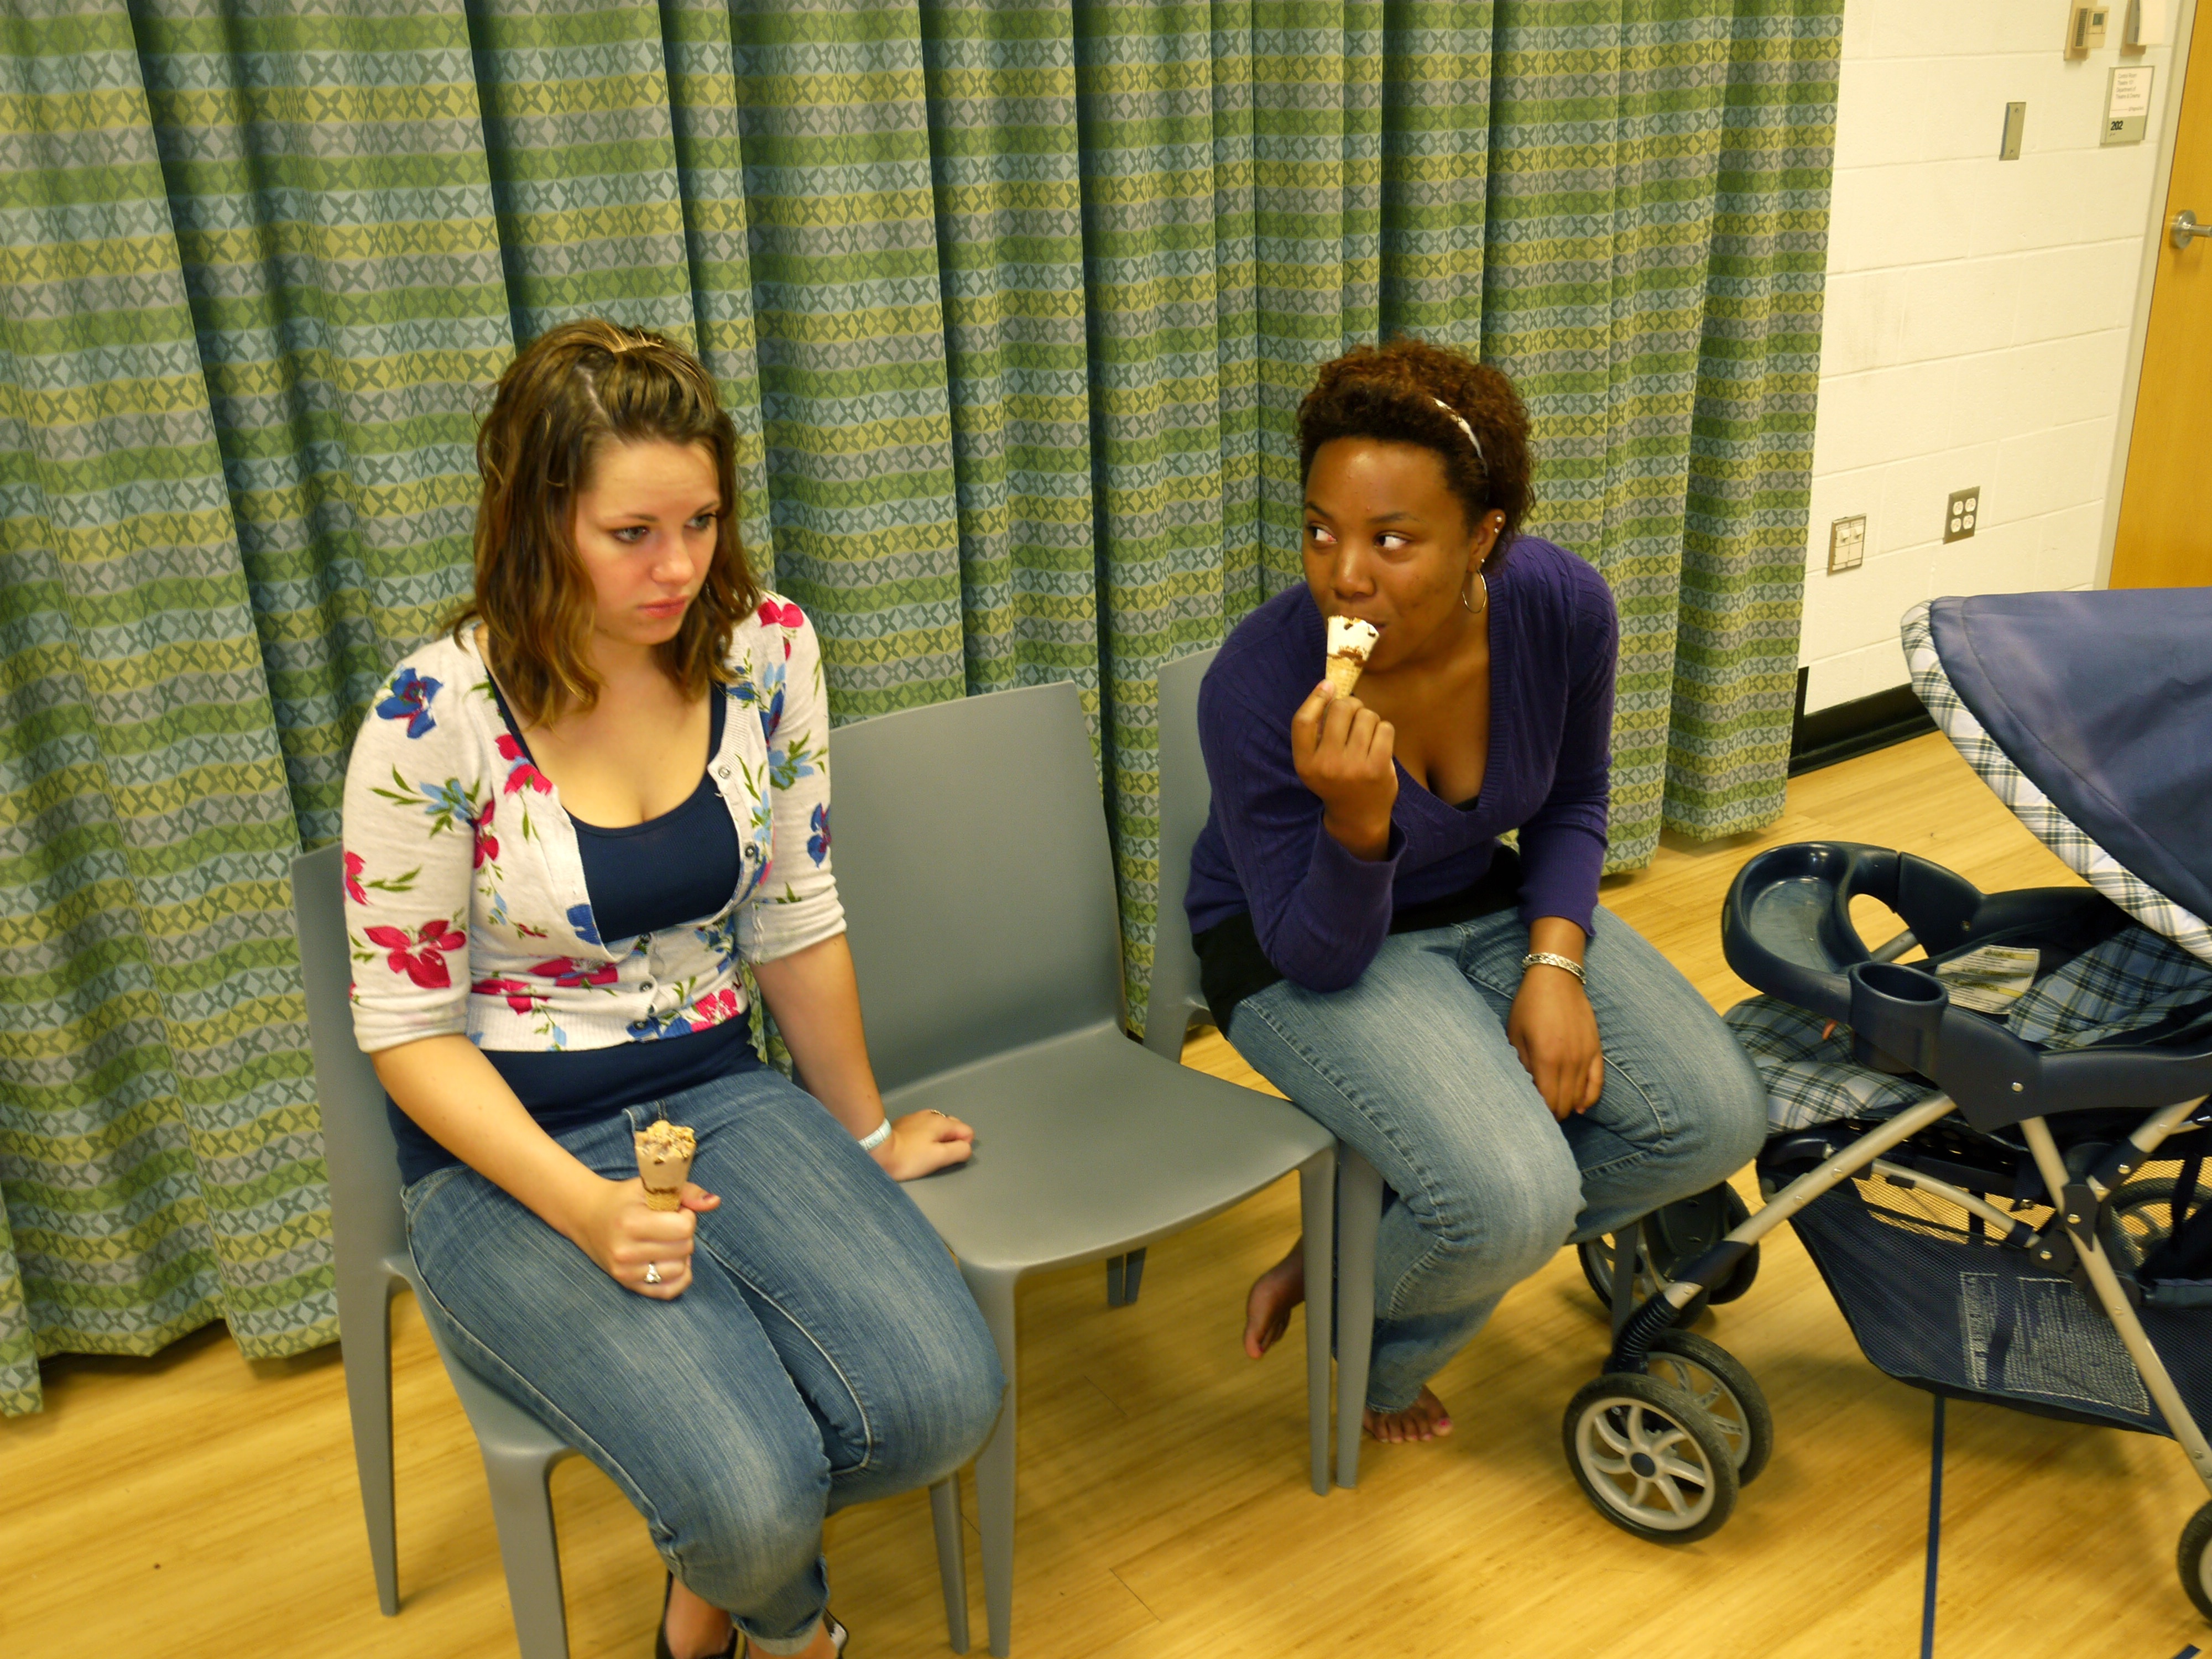 Alexis Demetra Baker (right) and Kristian Yelverton sit in chairs with ice cream cones.